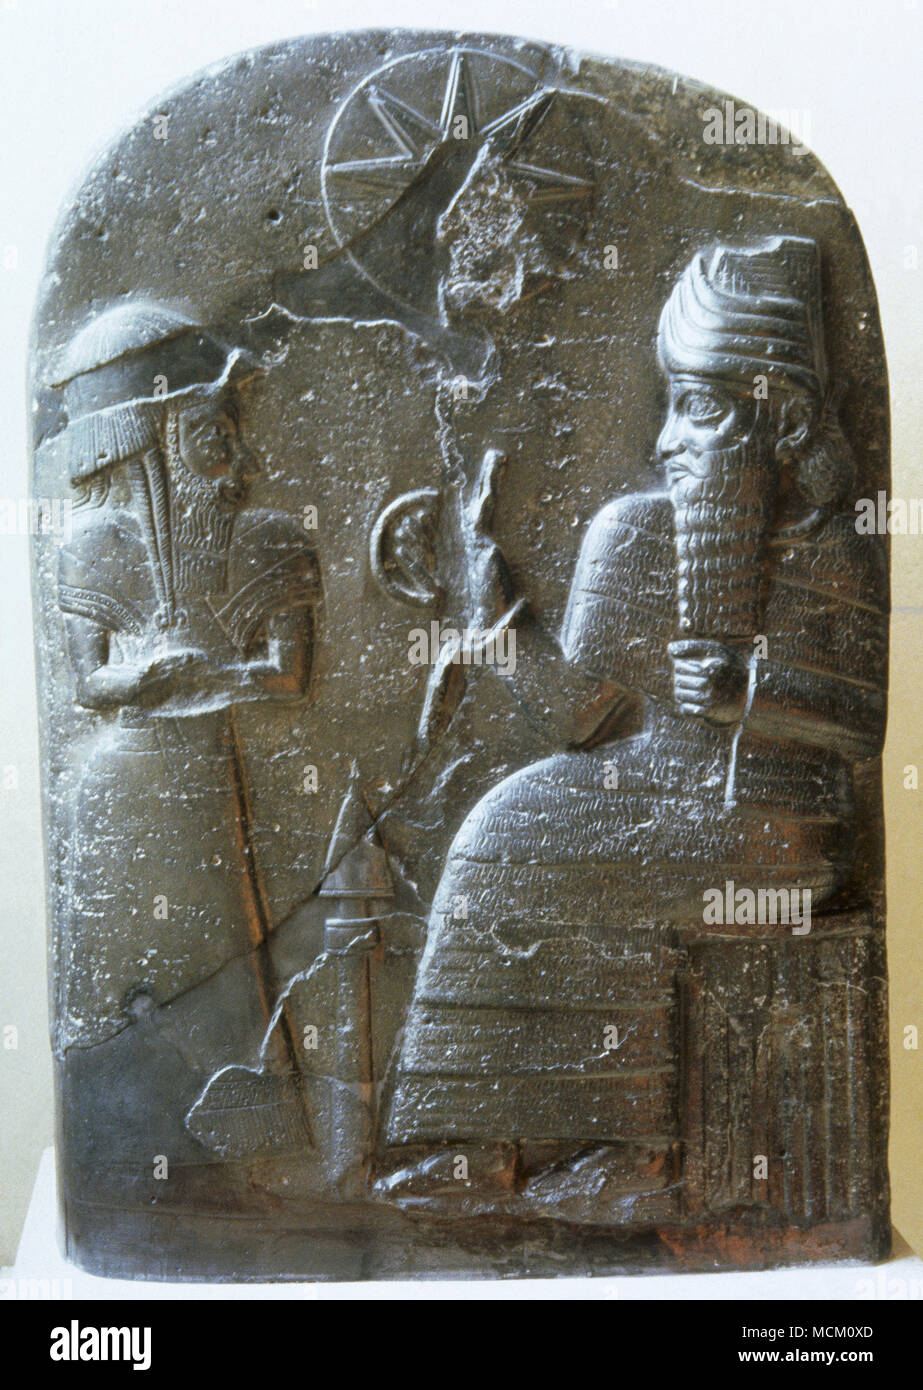 Babylonian stele usurped by Elamite King. Basalt. 1155-1185 BC. From Susa, Iraq. Louvre Museum. Paris, France. - Stock Image